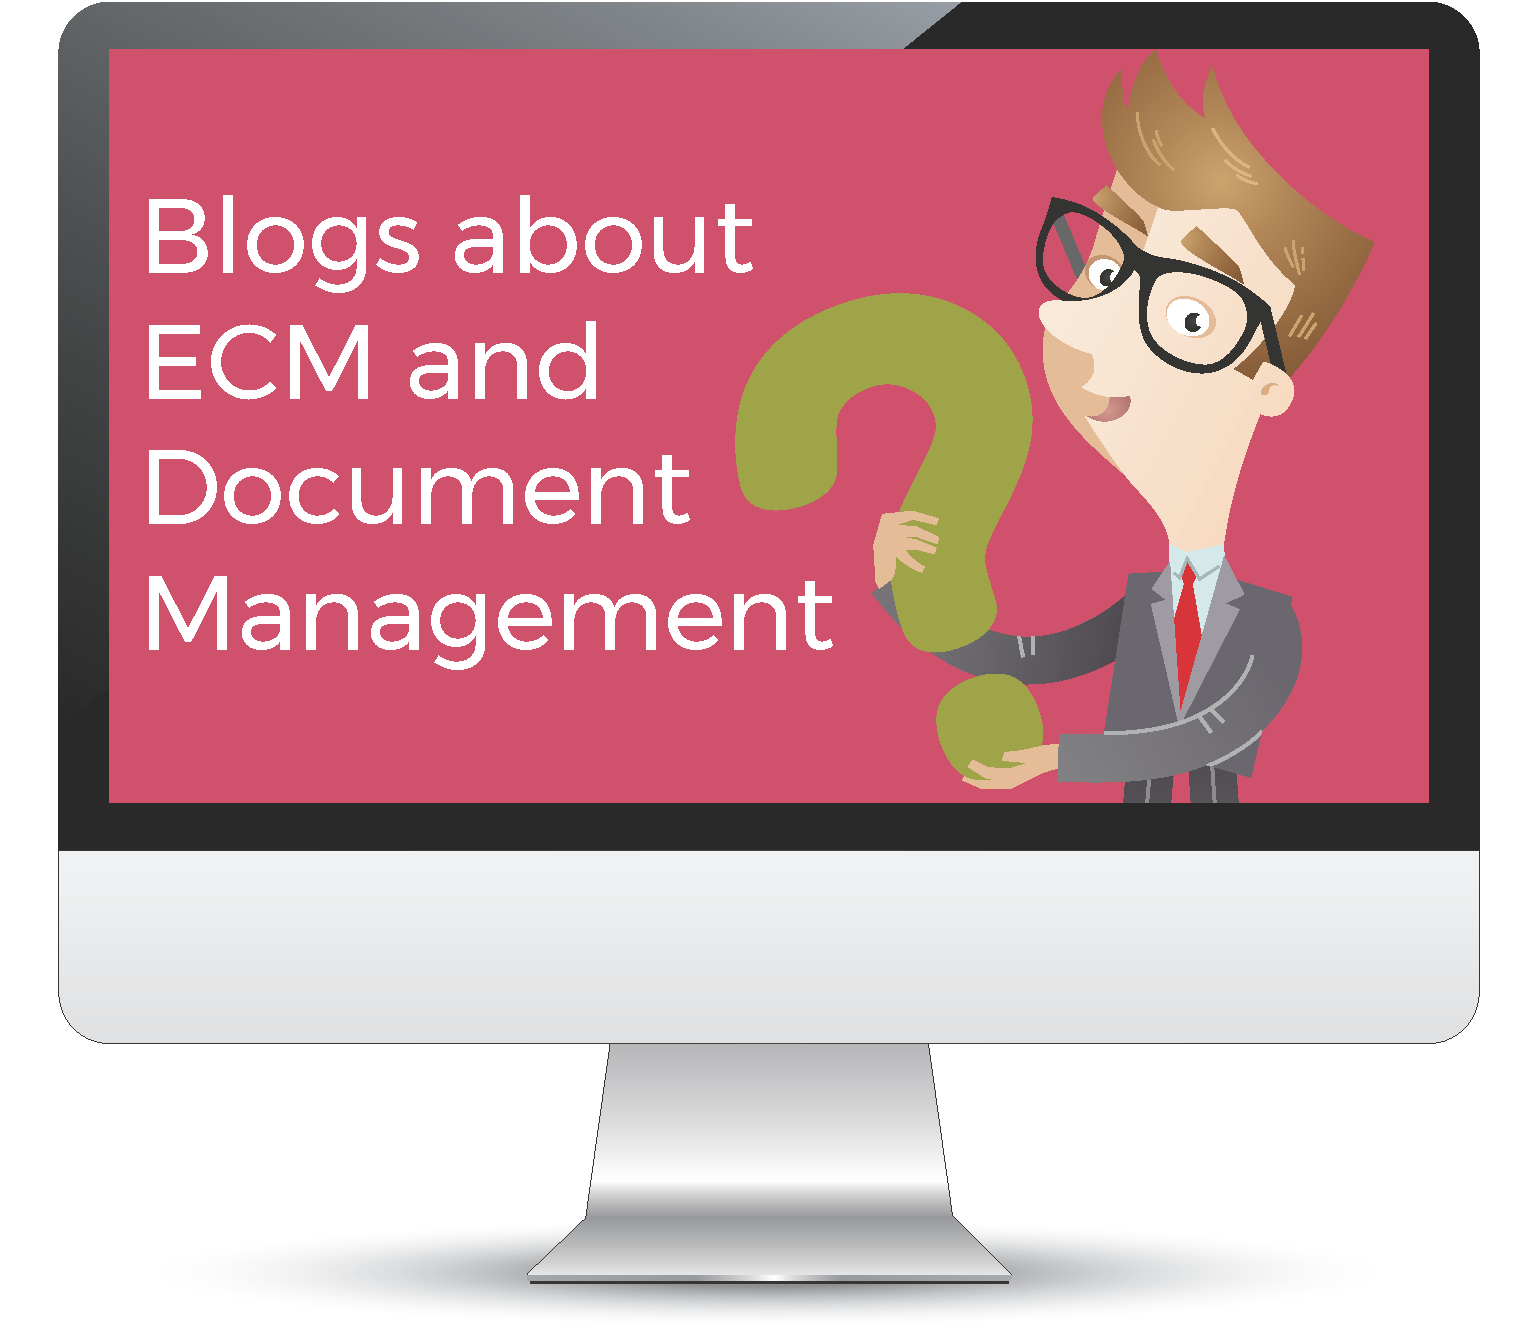 Blogs about document management